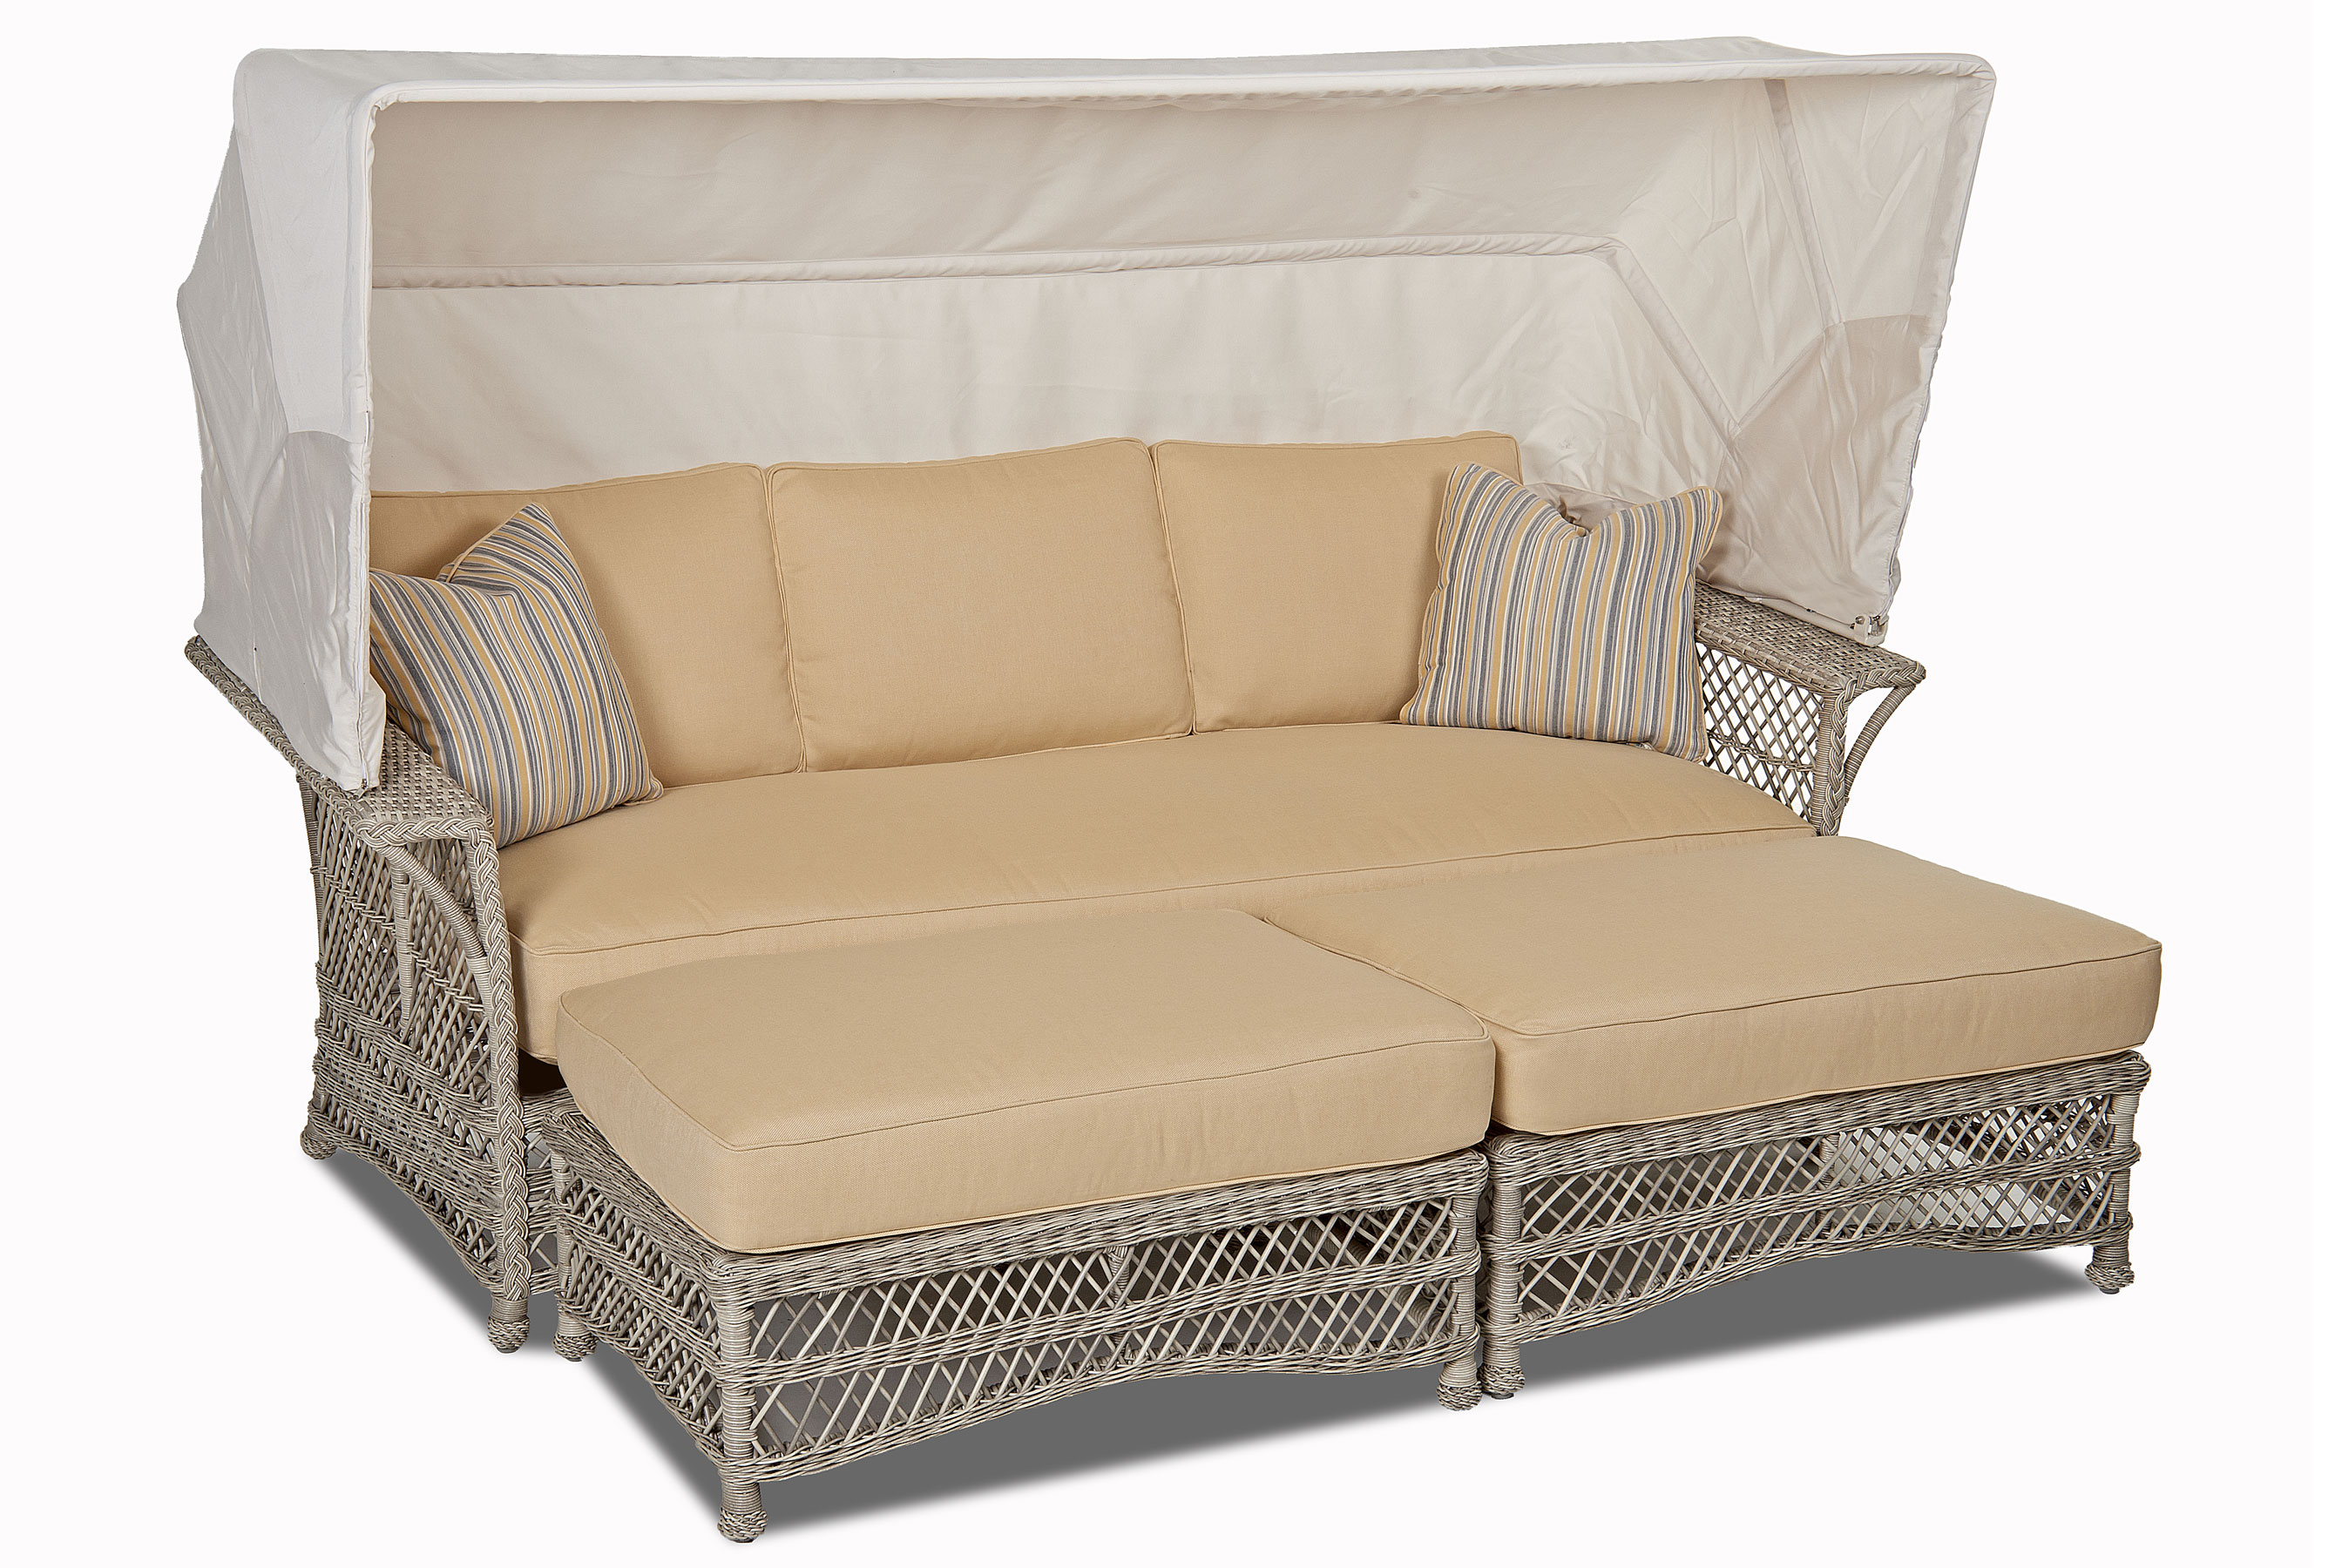 day daybeds timber recycled retro hardwood bed daybed outdoor australian